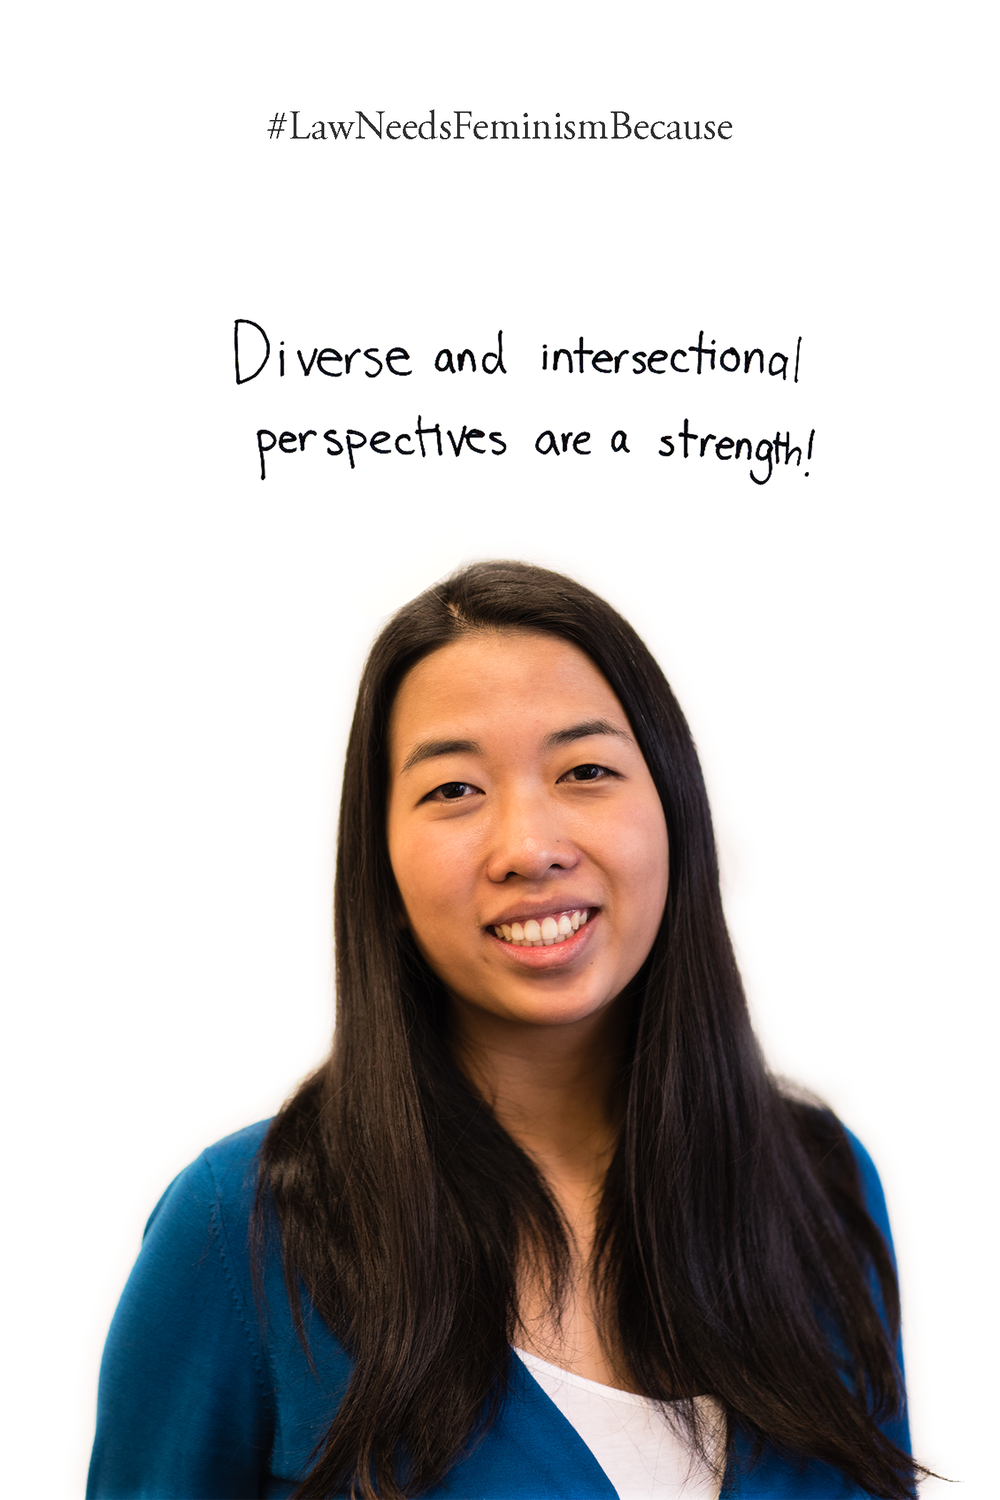 Law Needs Feminism Because  Diverse and intersectional perspectives are a strength!